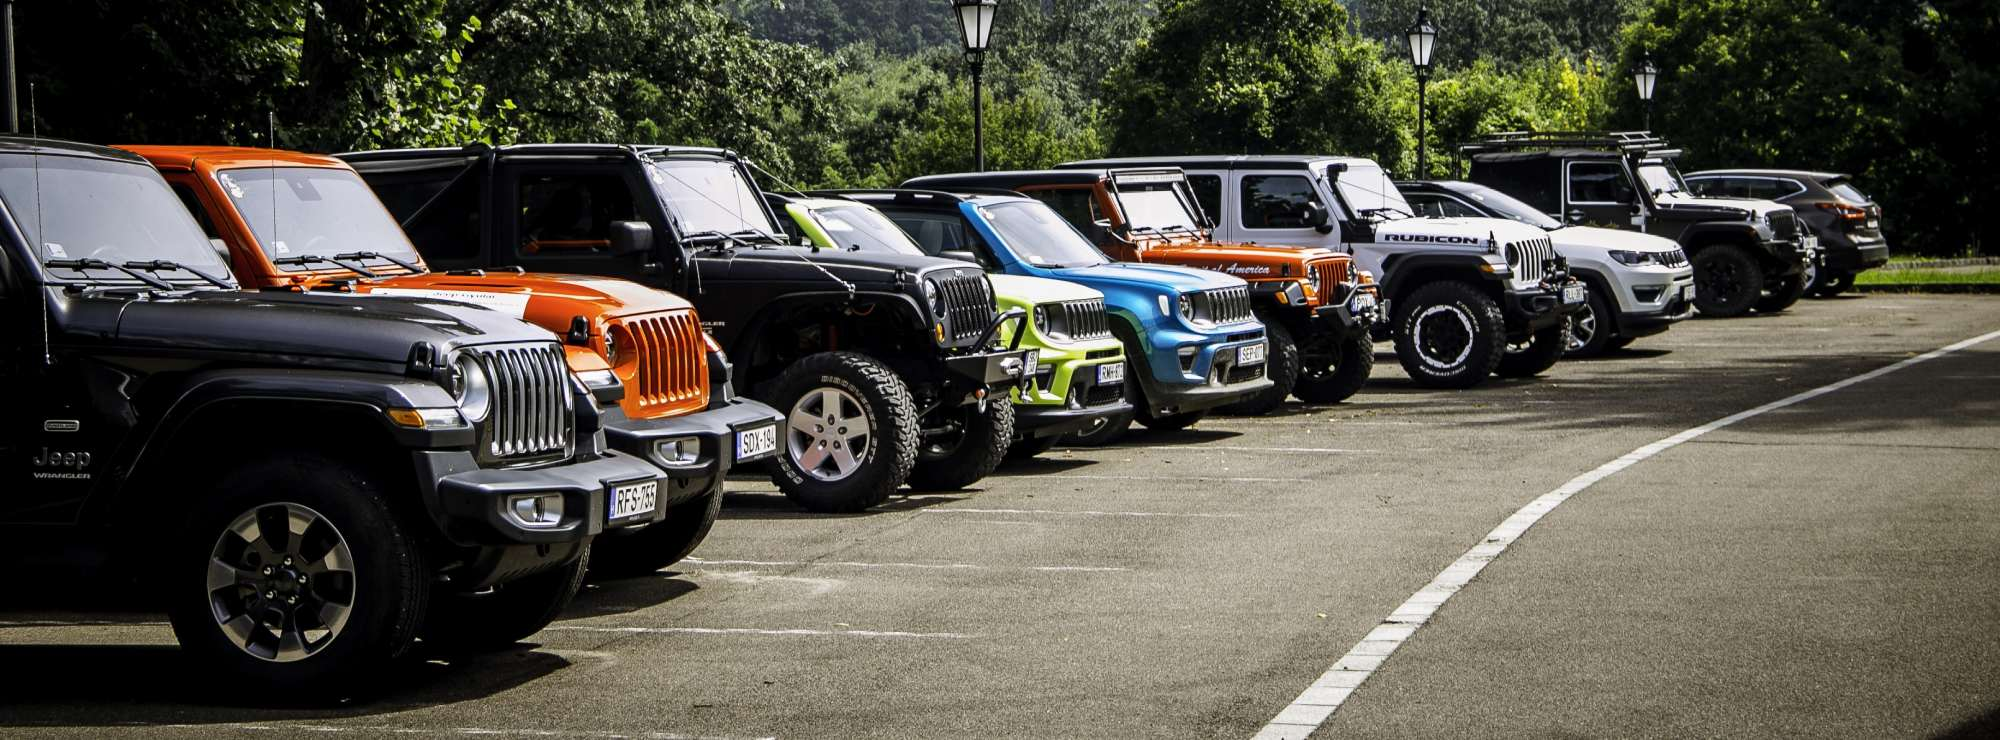 Jeep Owners Club Hungary